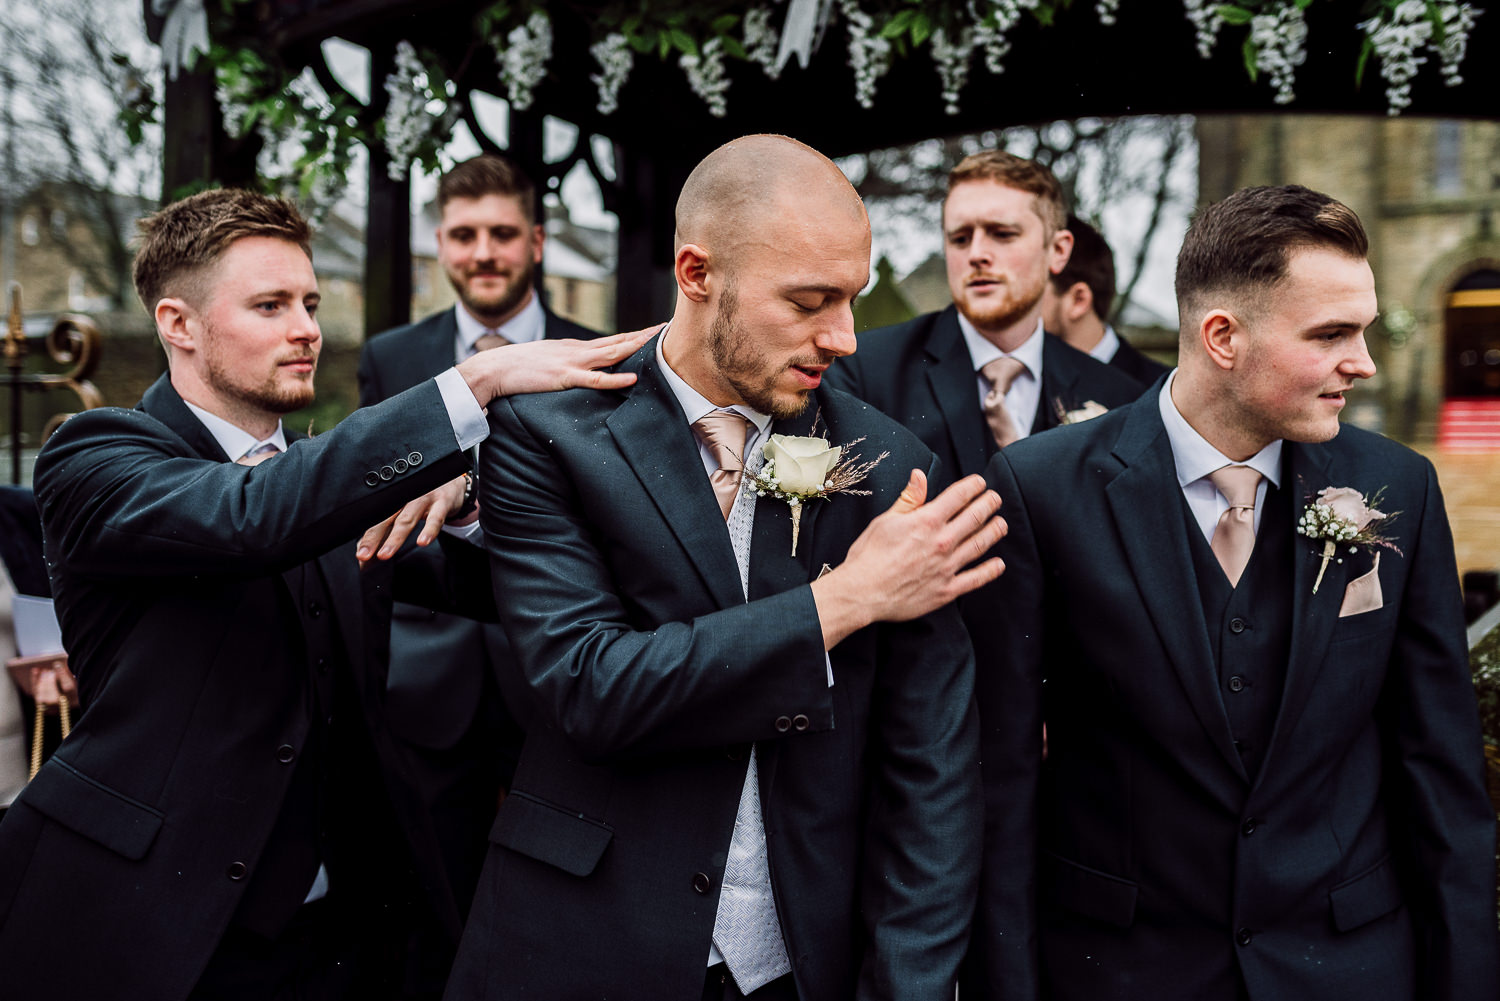 Groom getting confetti off himself